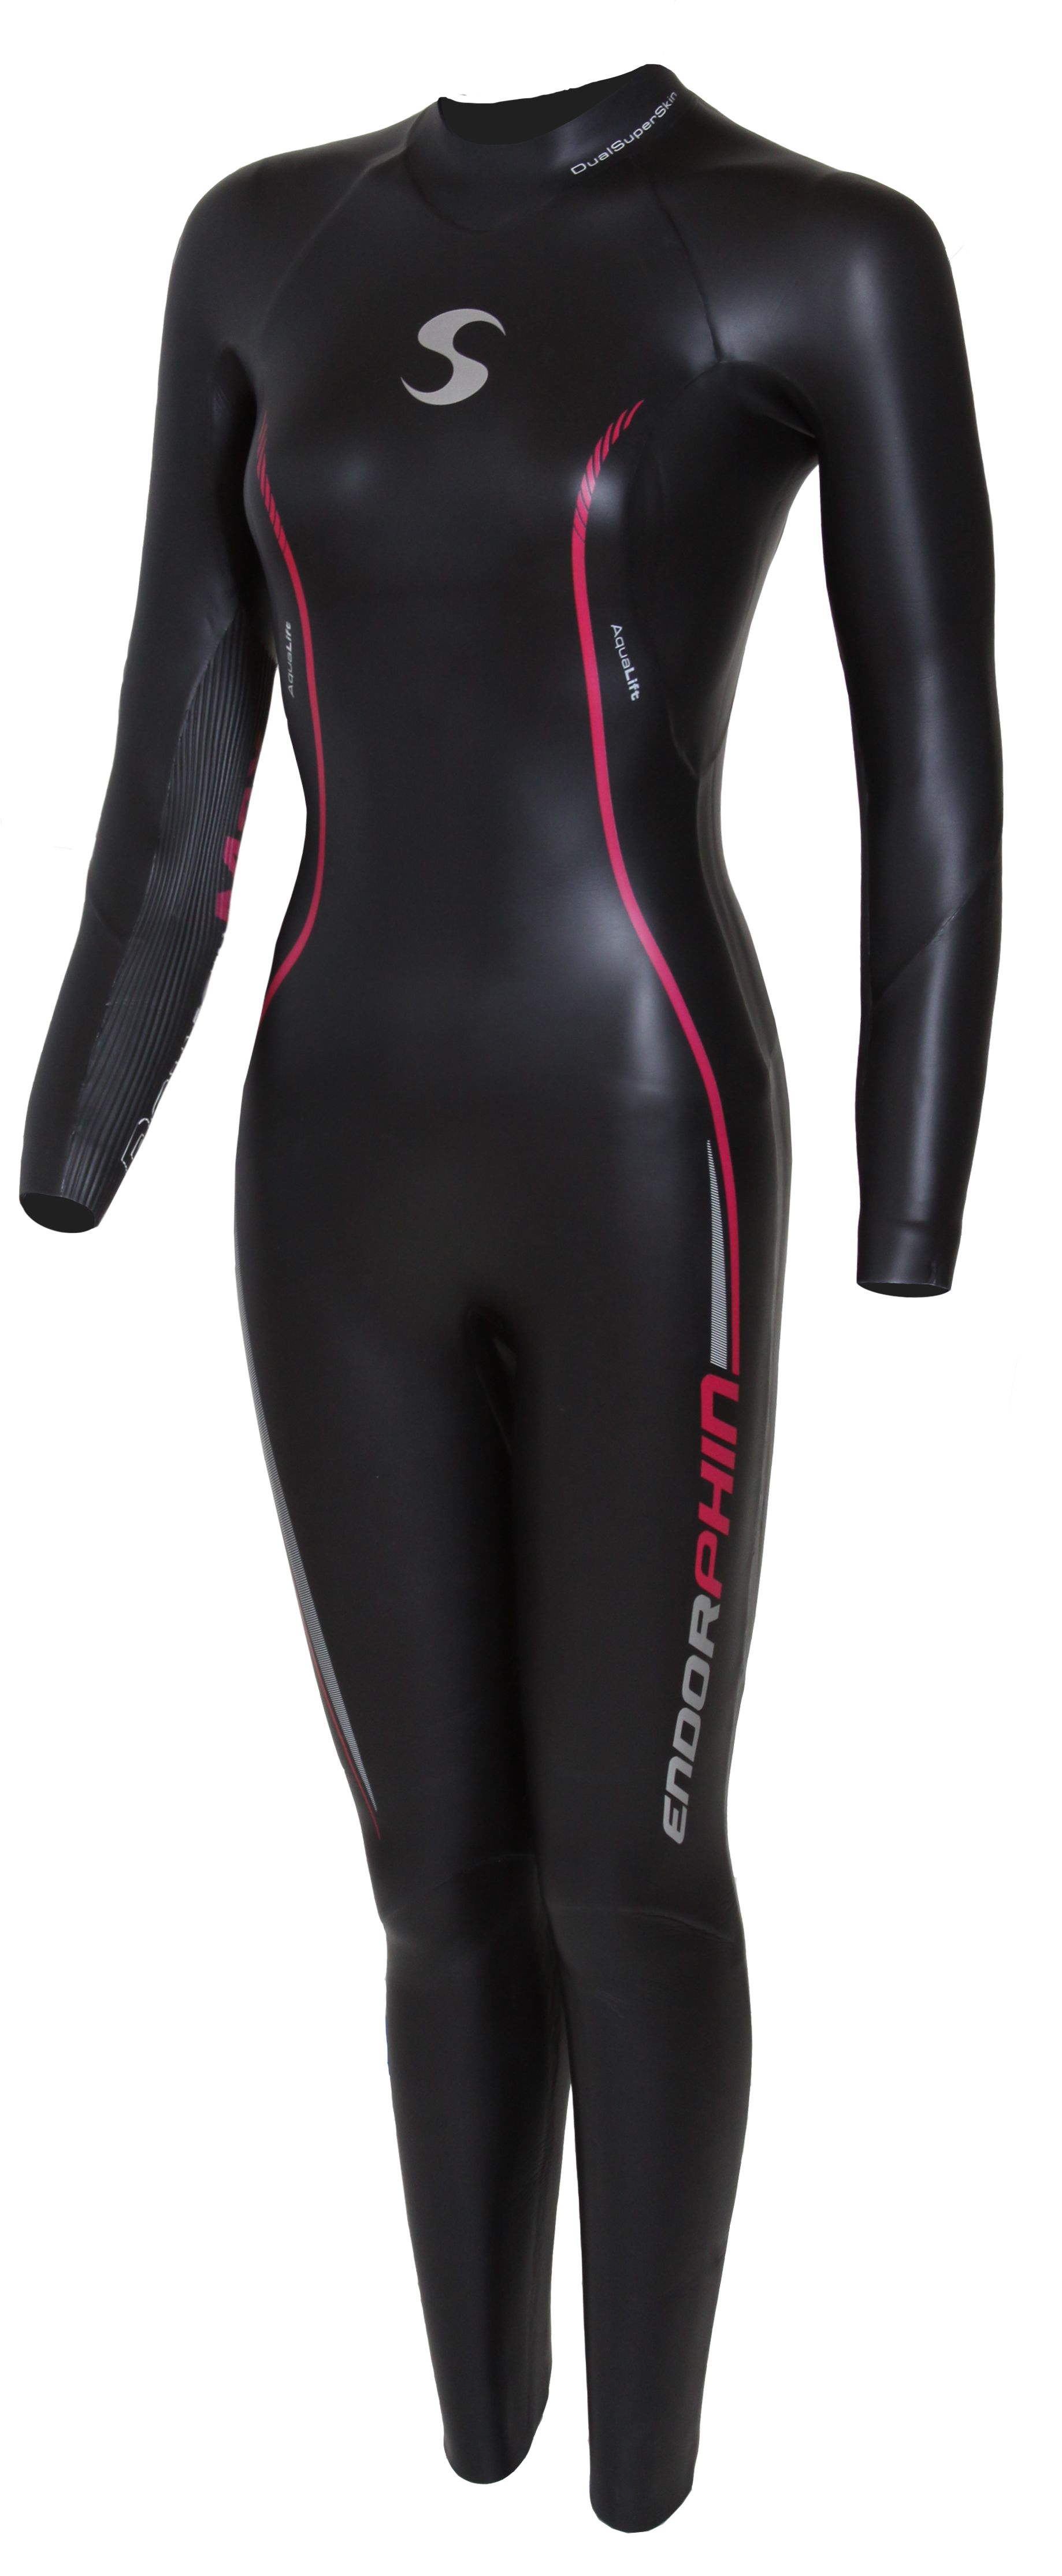 e998970f843 2012 Women's Synergy Endorphin Full Sleeve Wetsuit | Our Products ...